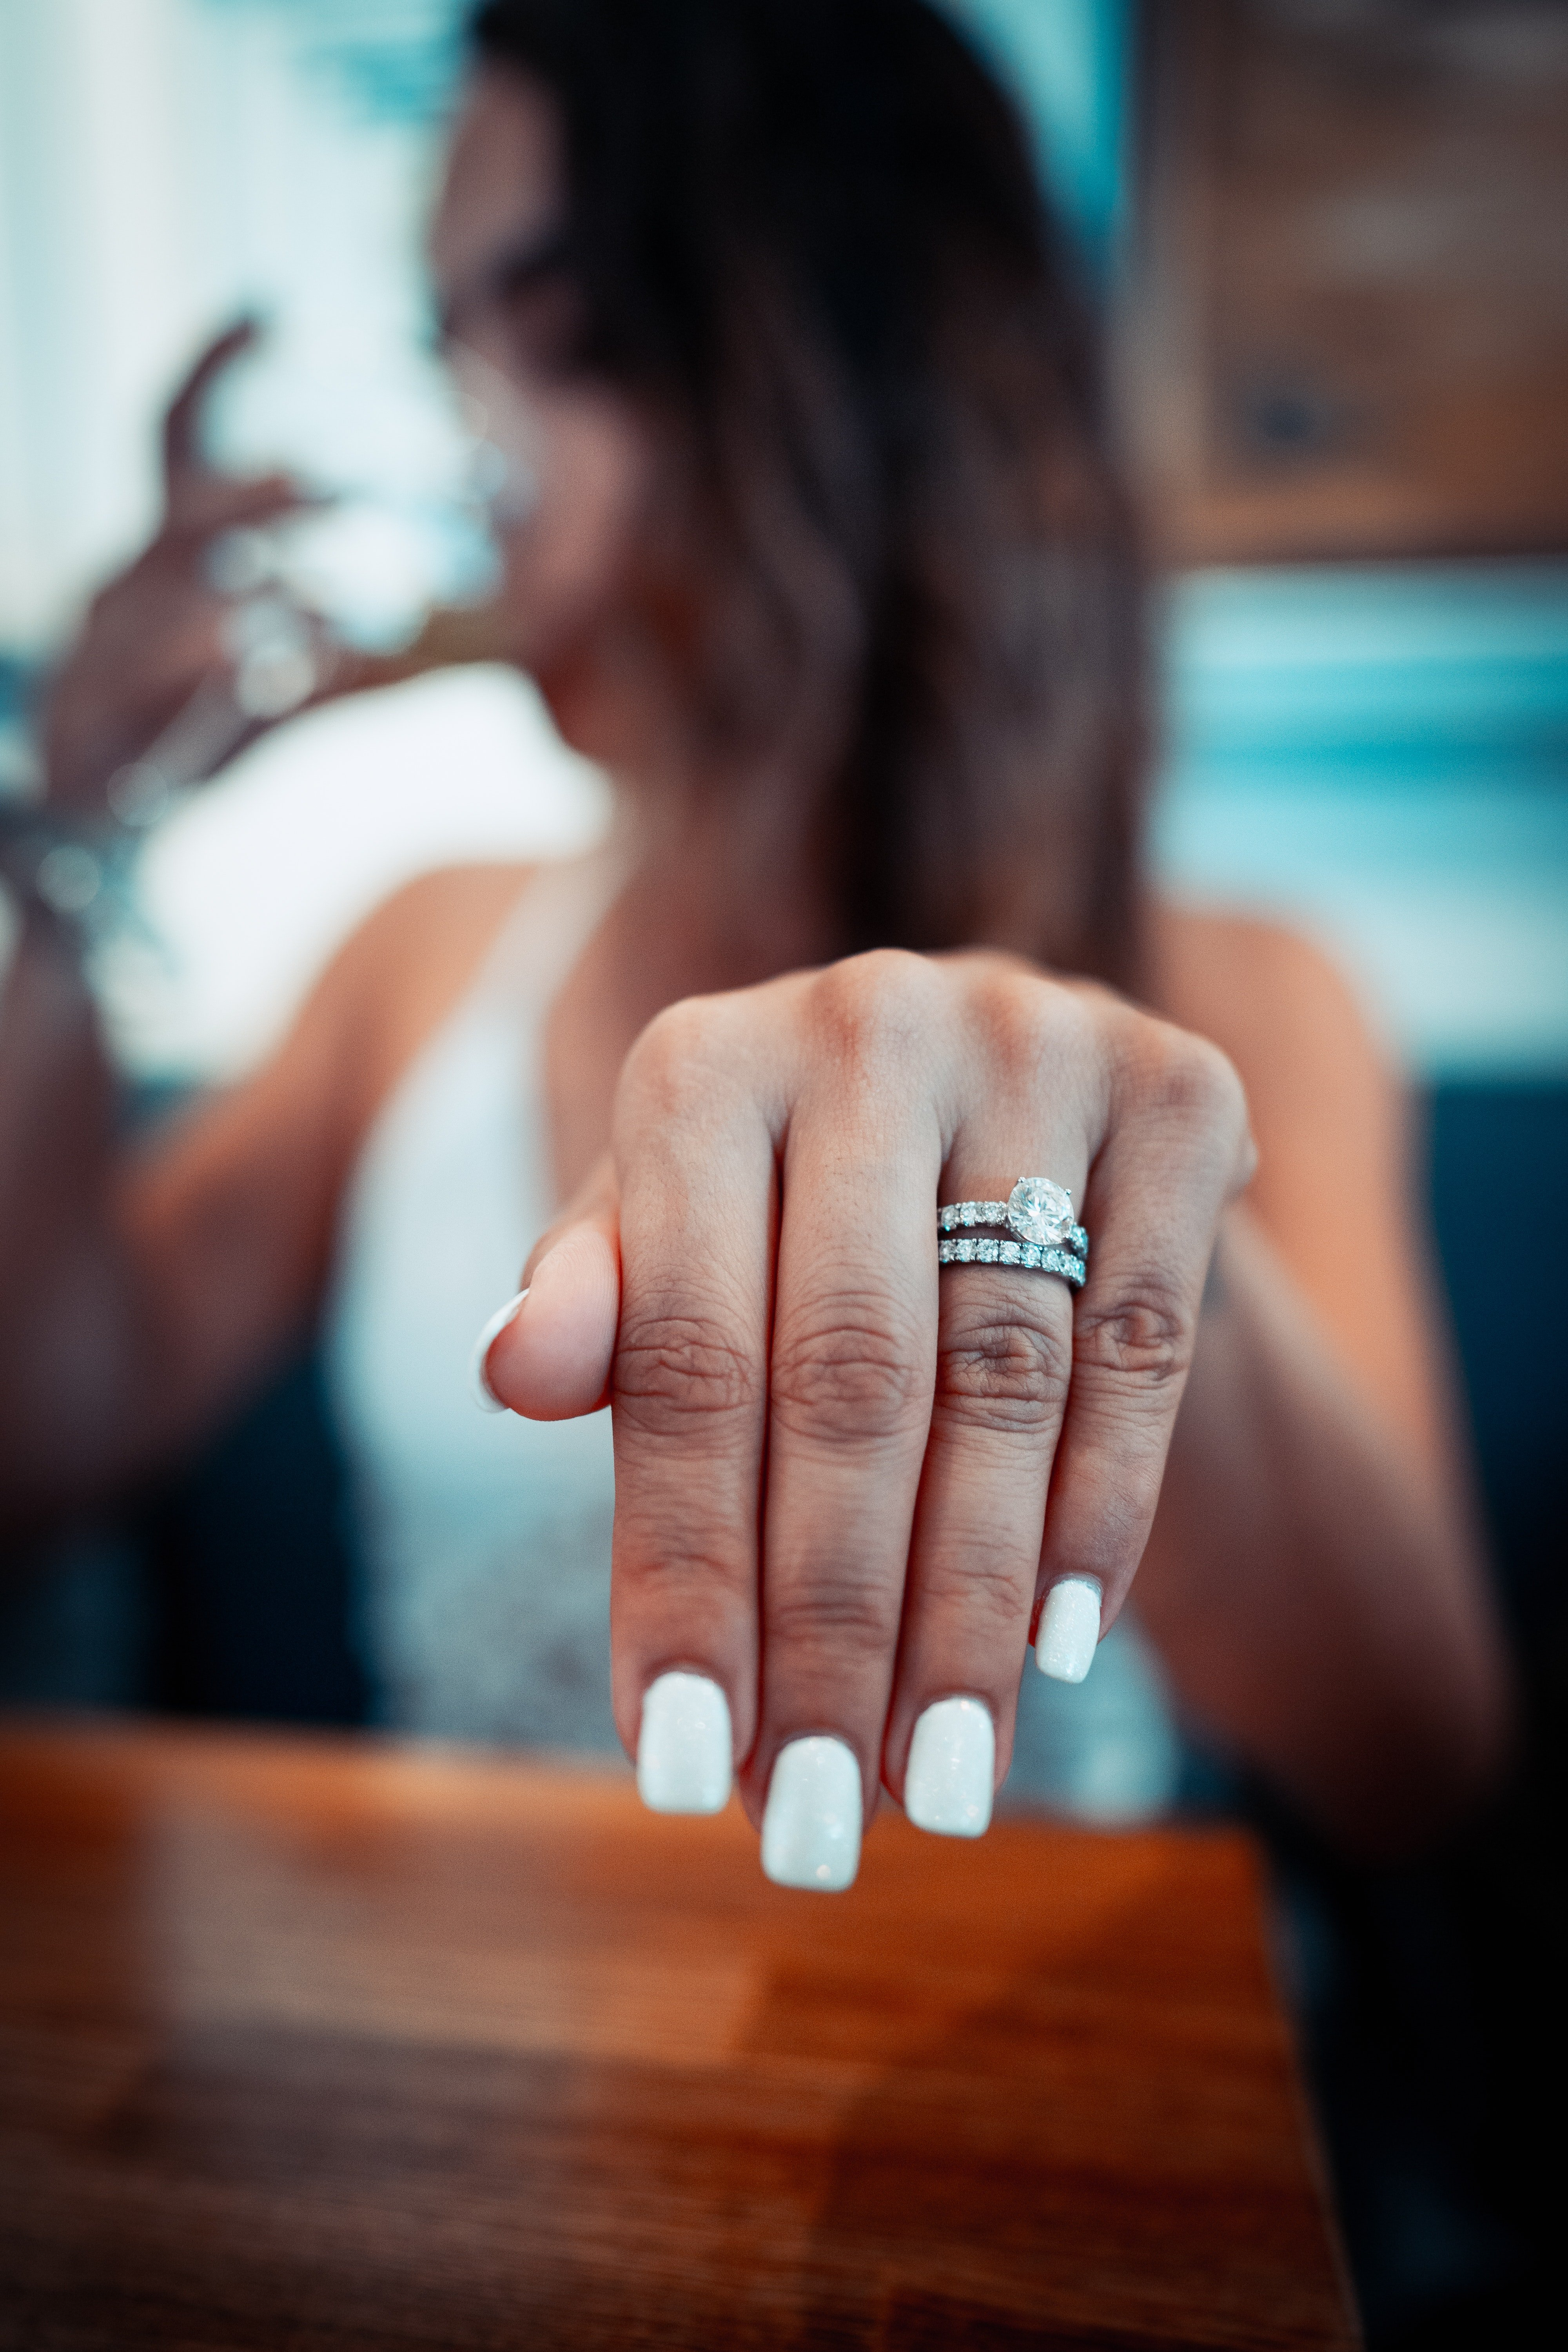 Olivia proudly showed her engagement ring to Lucas | Photo: Pexels